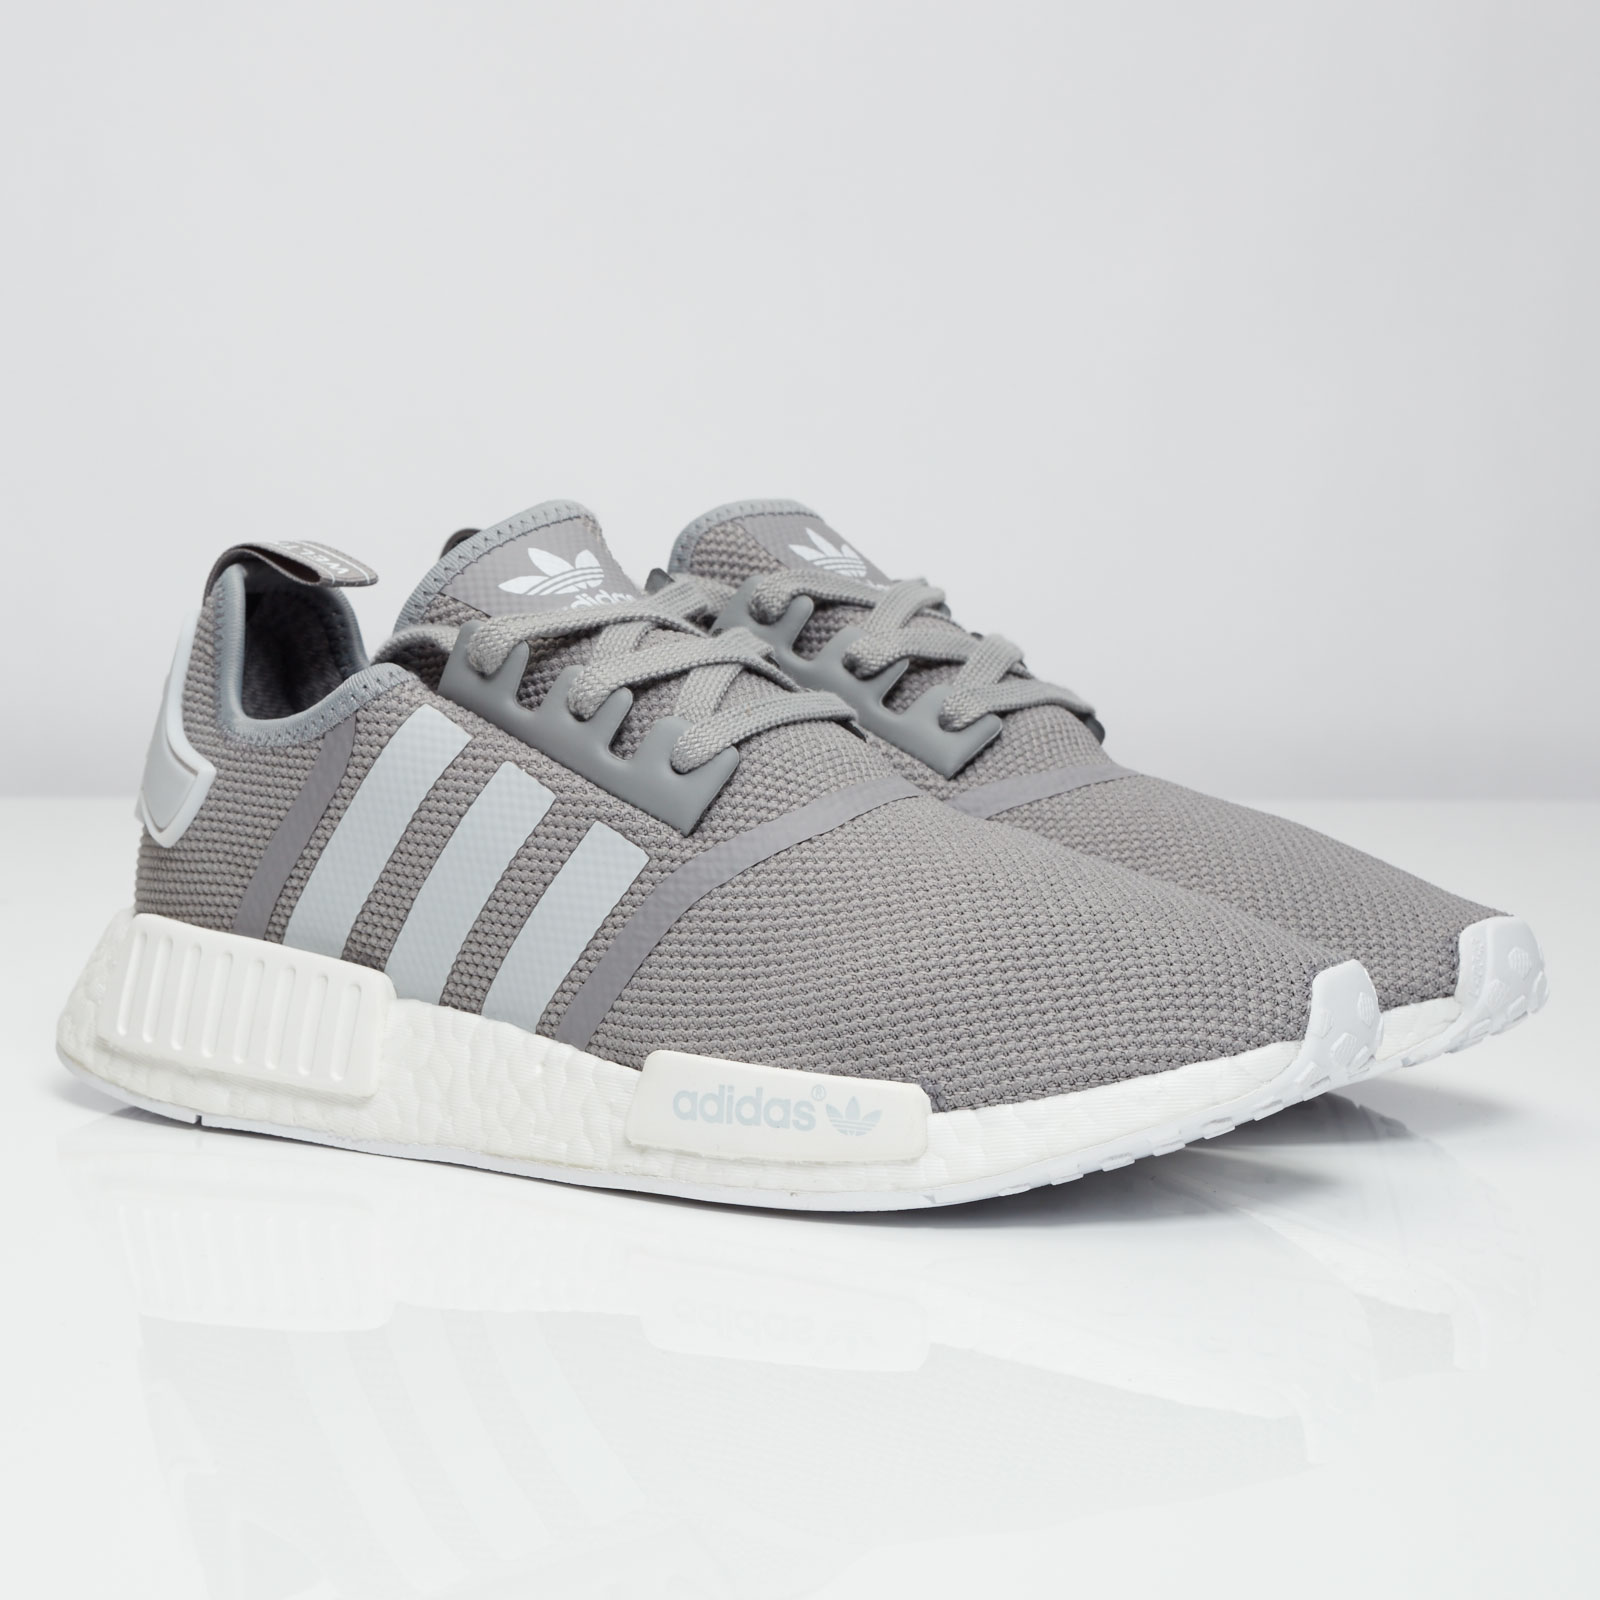 Adidas Originals NMD dam